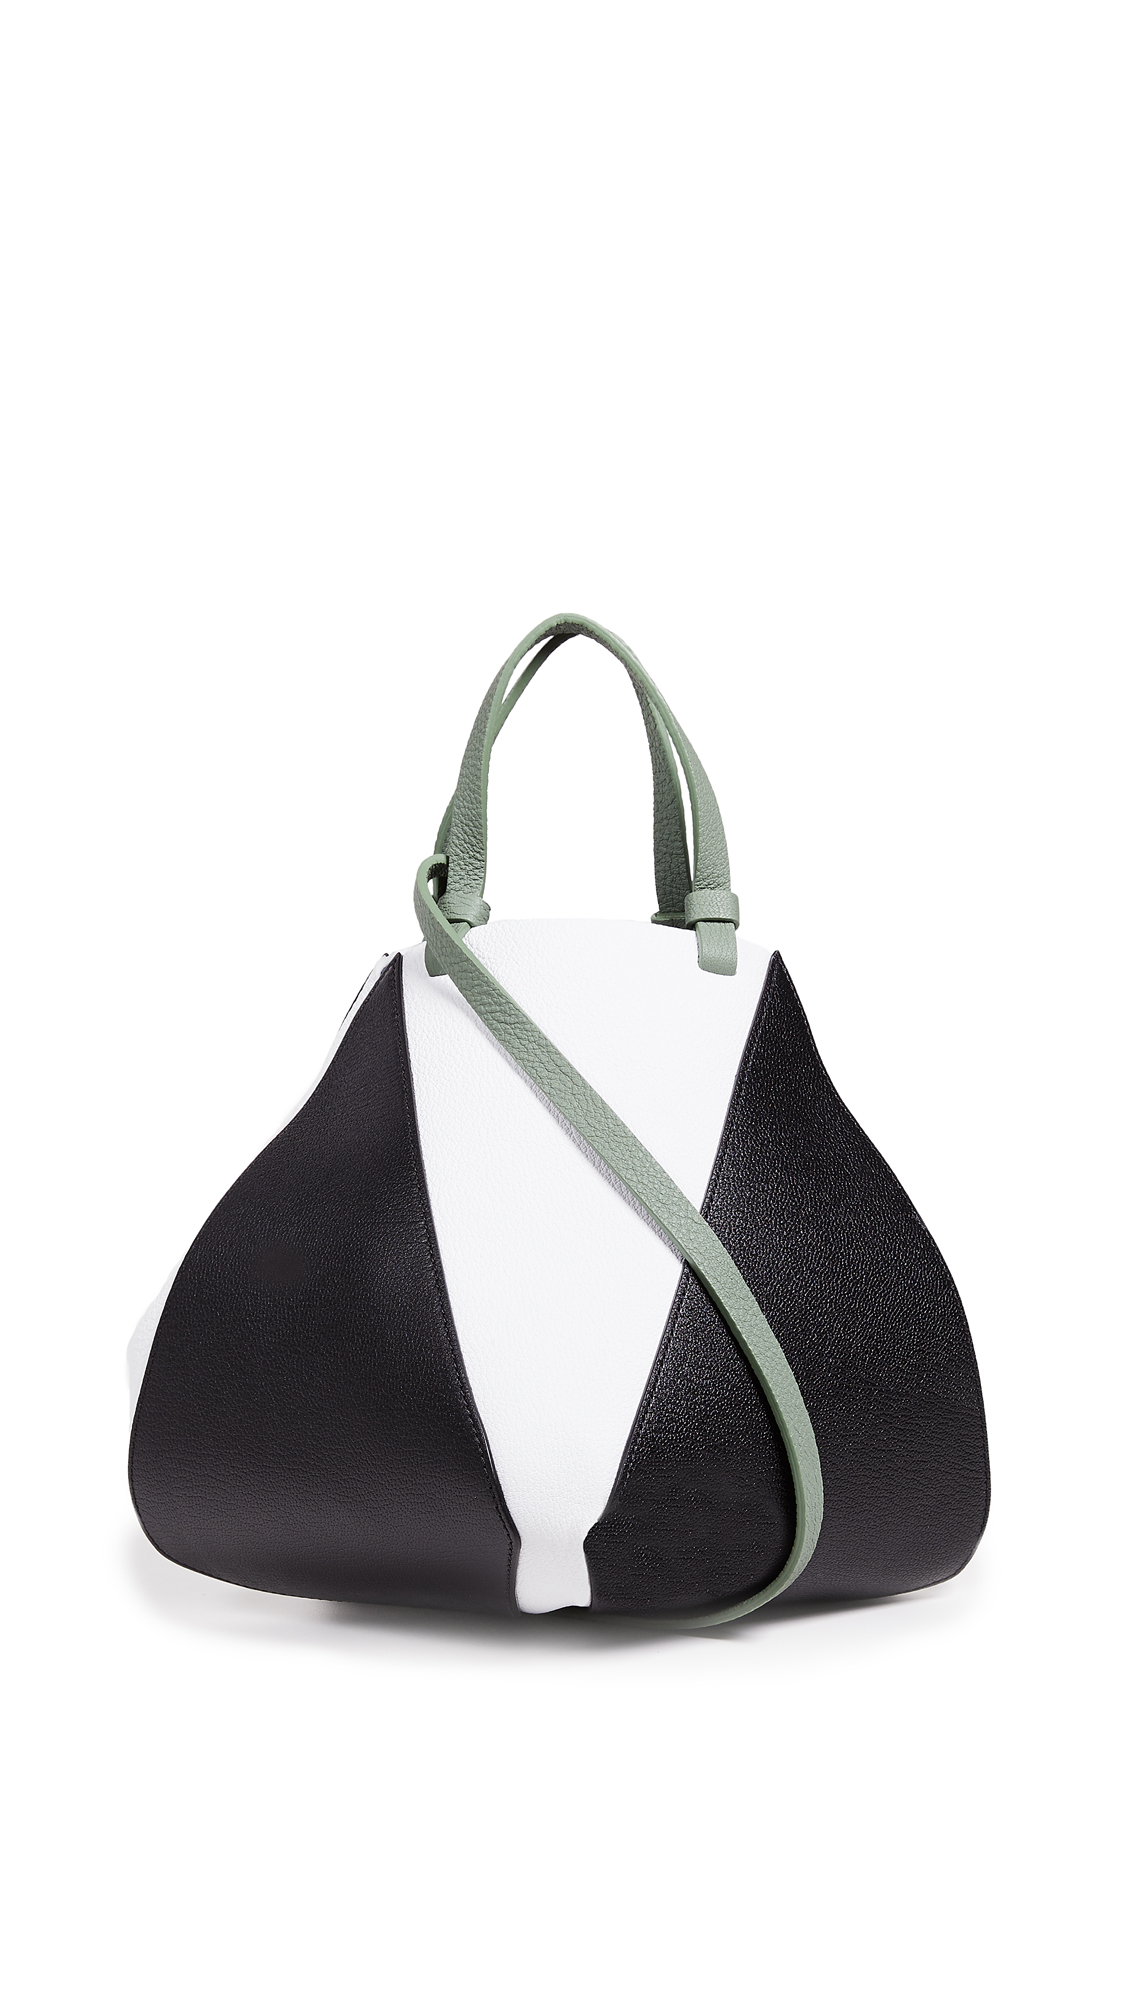 THE VOLON CINDY SHOPPER TOTE